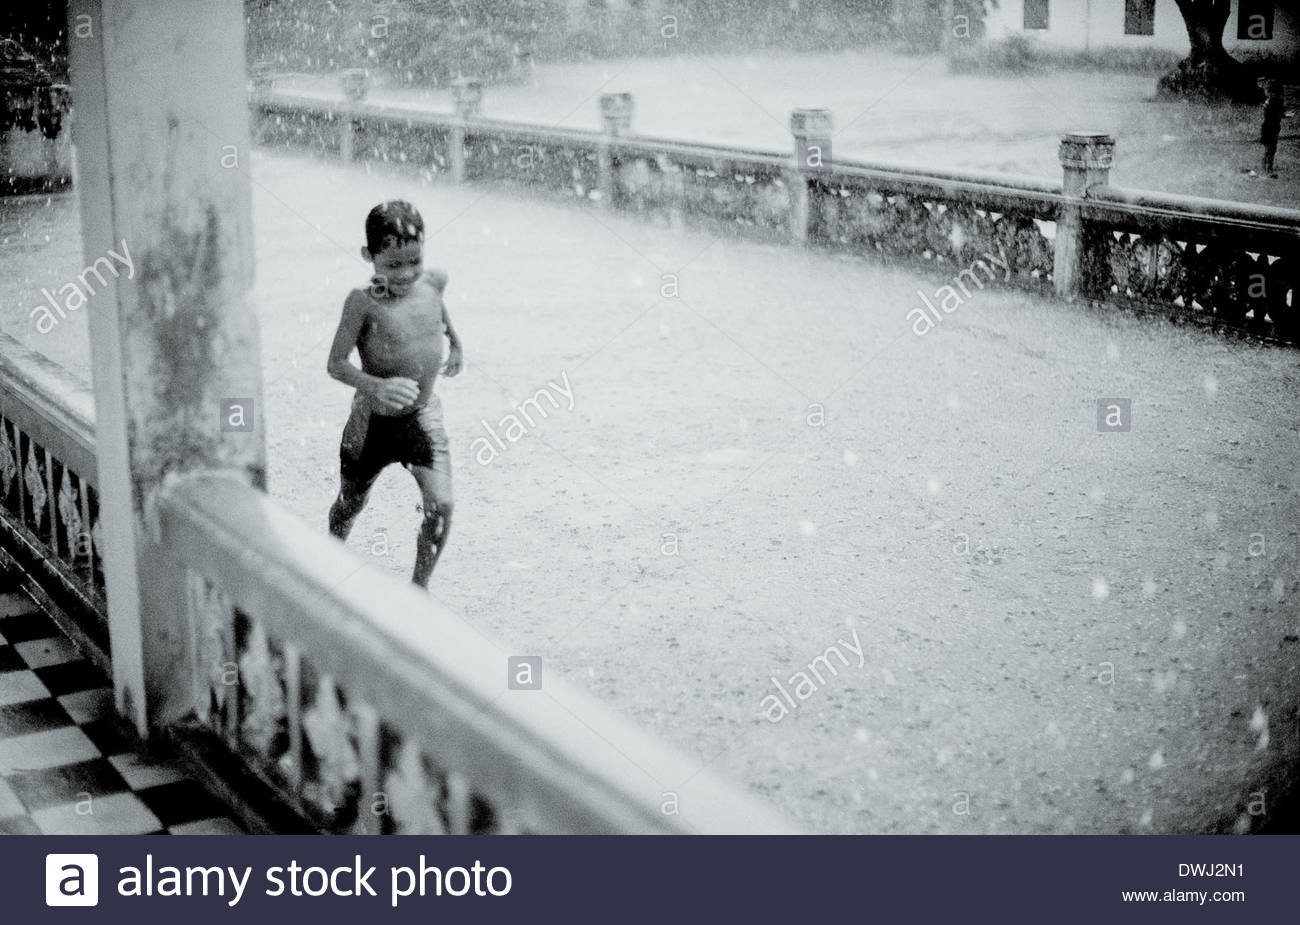 A boy running in the monsoon rains at Angkor Wat, Siem Reap province, Cambodia, South East Asia. - Stock Image